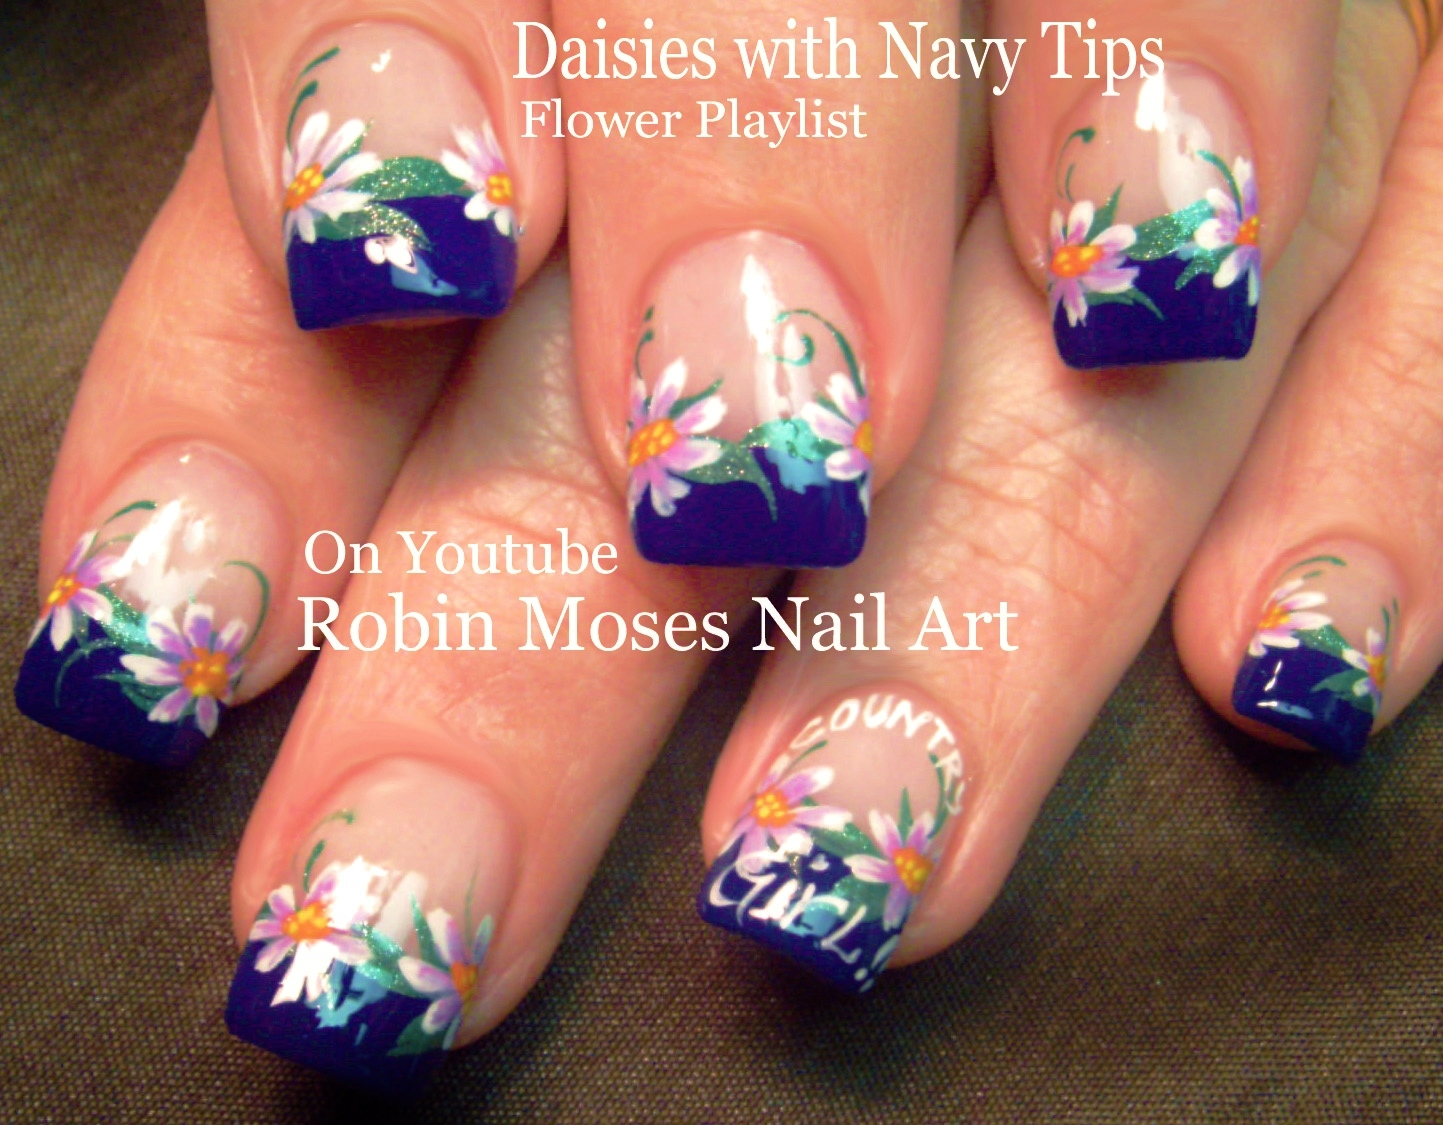 Nail Art by Robin Moses: Daisy Nail Art on Navy Blue Tips! \